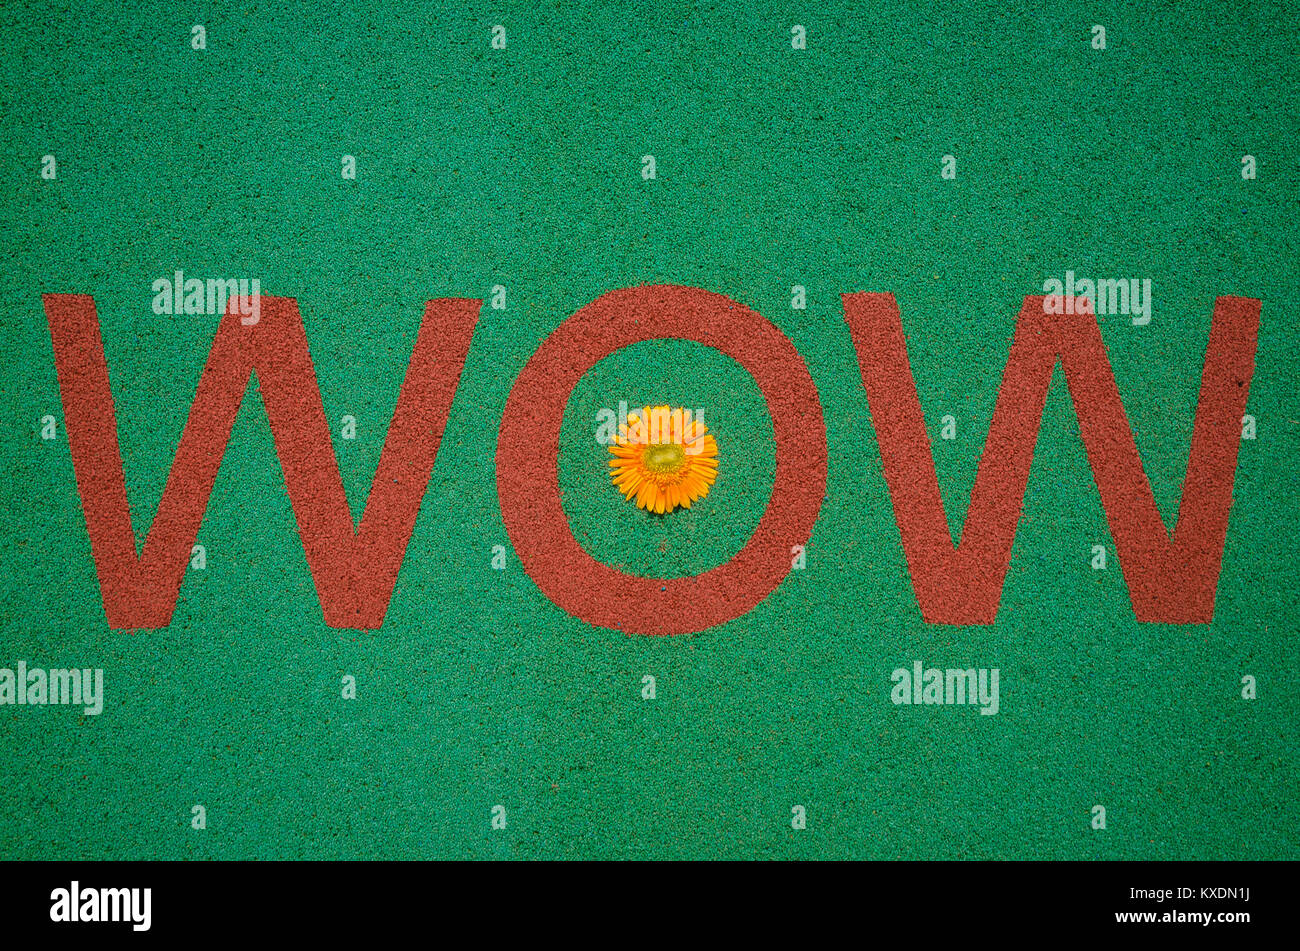 'WOW' painted in bold with red color and a flower head kept at its center on green synthetic rubber running - Stock Image